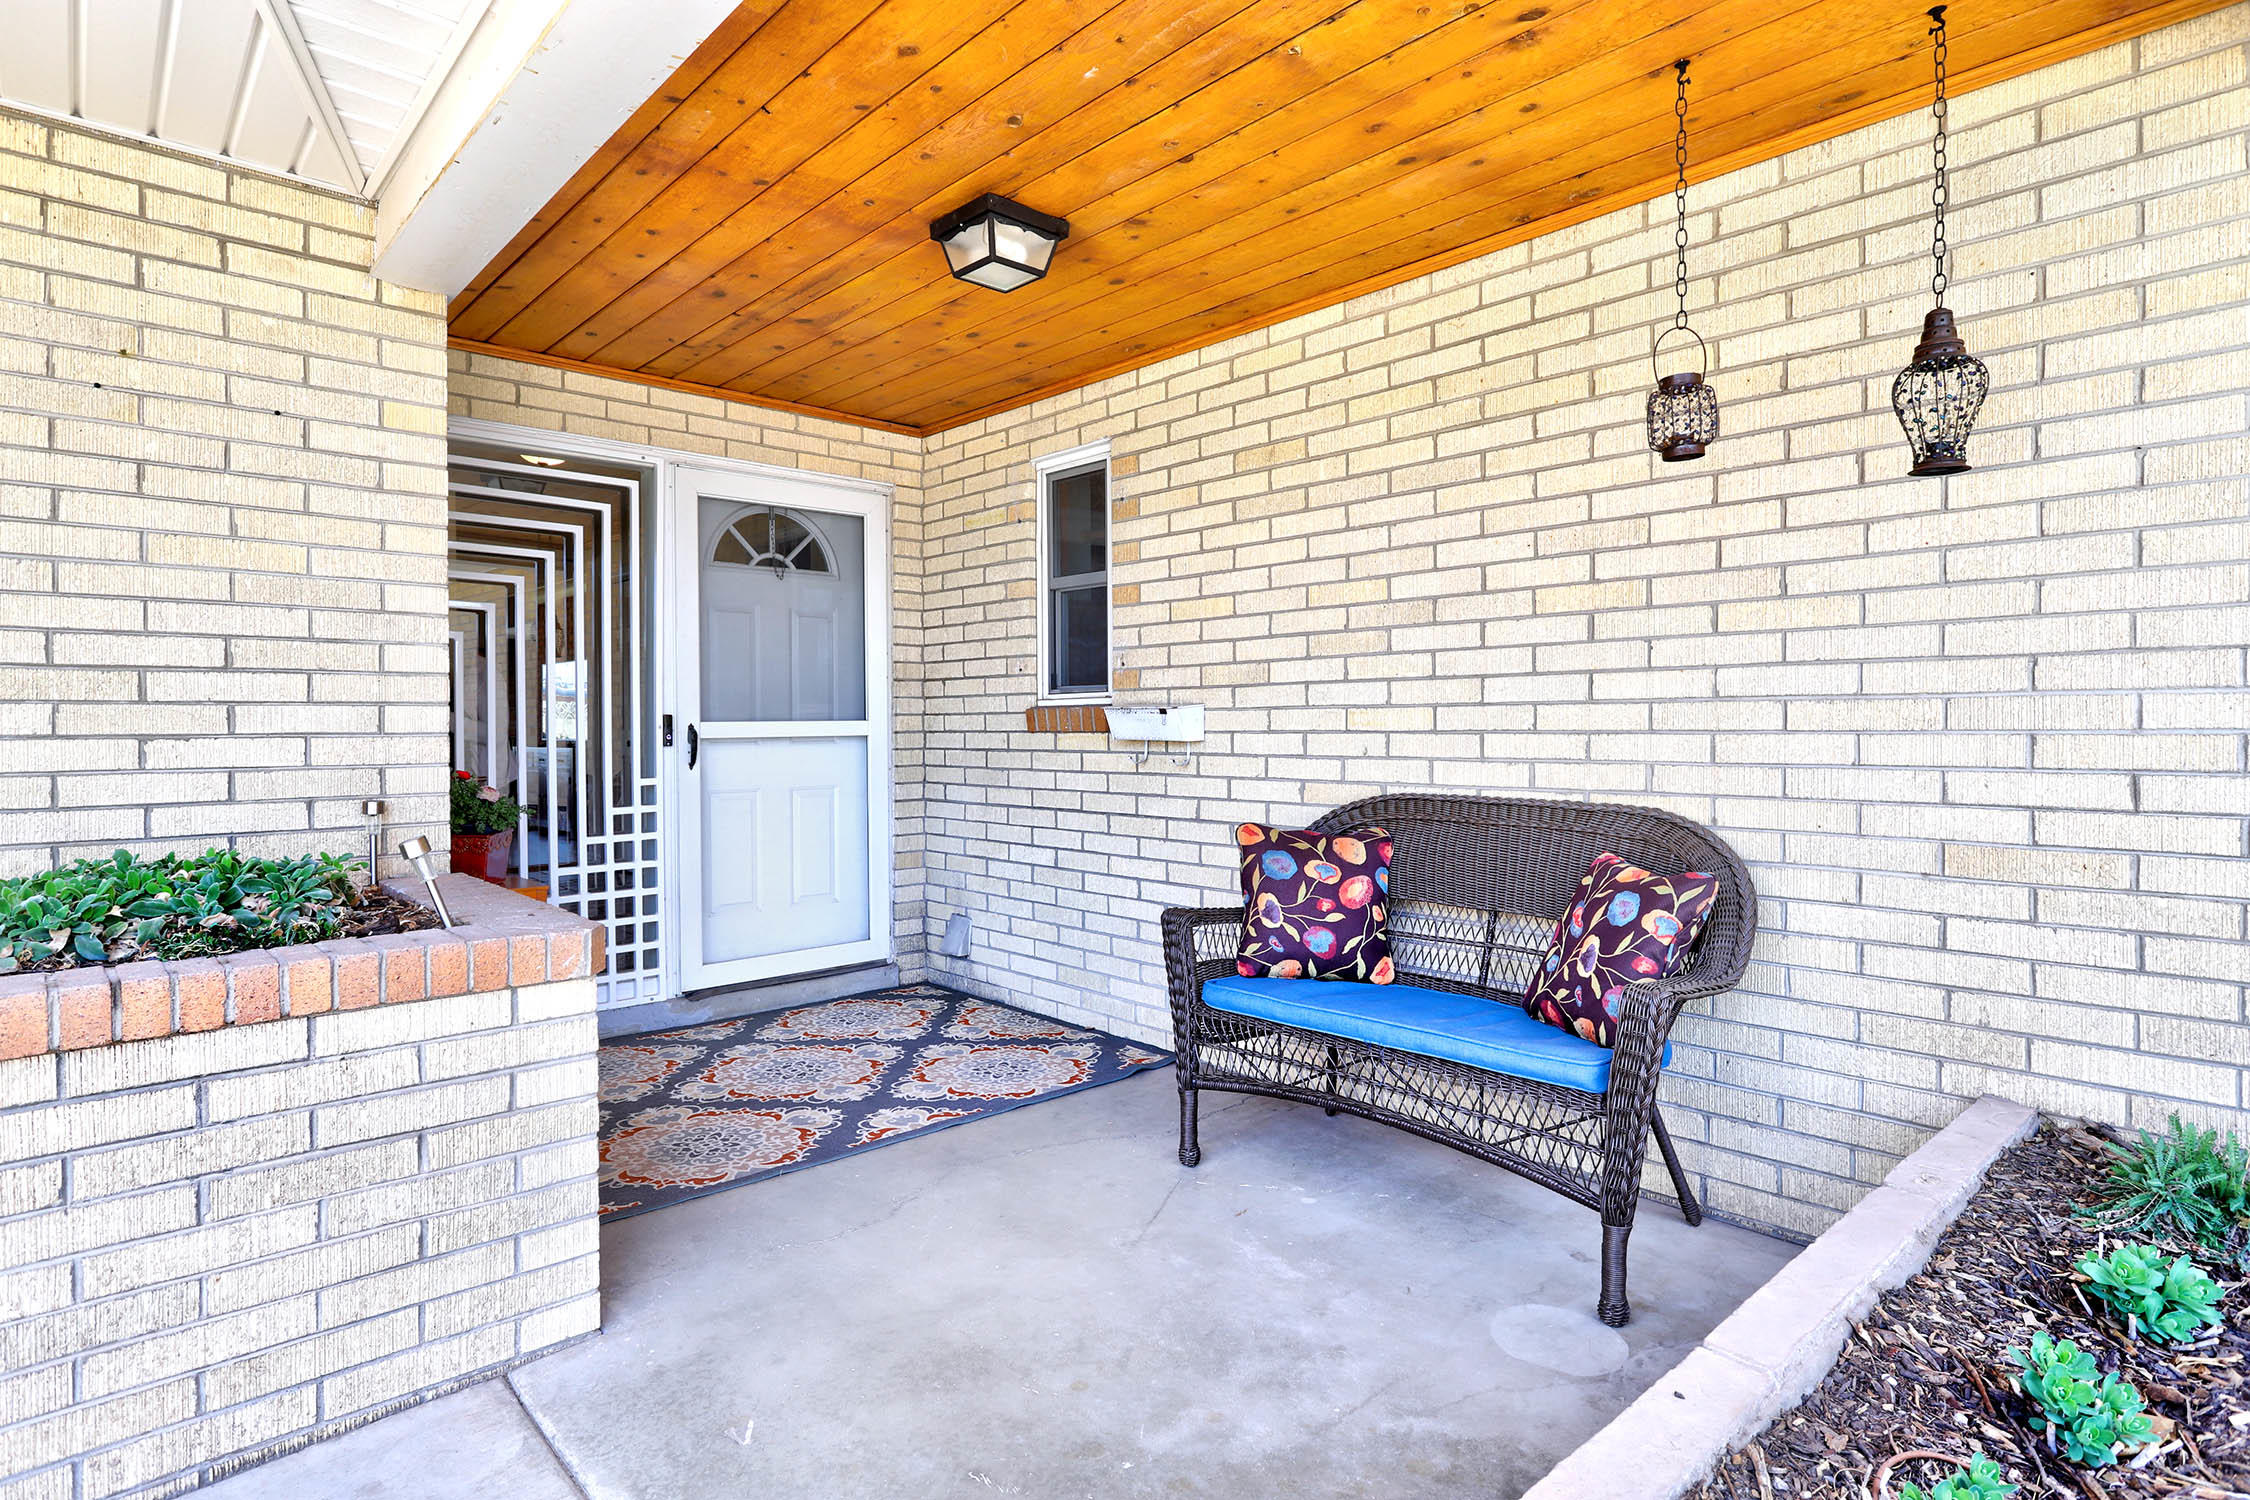 Here's your chance to own a lovely, established home in the heart of Albuquerque. This midcentury ranch has hardwood floors, spacious rooms, a breakfast nook, walk in closets, covered patio for dining, custom xeric landscaping, refrigerated air, gas firepit, AND separate living, dining, and family rooms so everyone can have the space they need to enjoy living or working in this beautiful, comfortable space. Major items including roof, sewer and water lines have all recently been updated. You'll feel the love and care that's gone into this home as soon as you step onto the wide covered front porch. Located on a wide street with friendly sidewalks, surrounded by mature trees, this home is the sum of its parts and more: come see it today. You will not be disappointed!